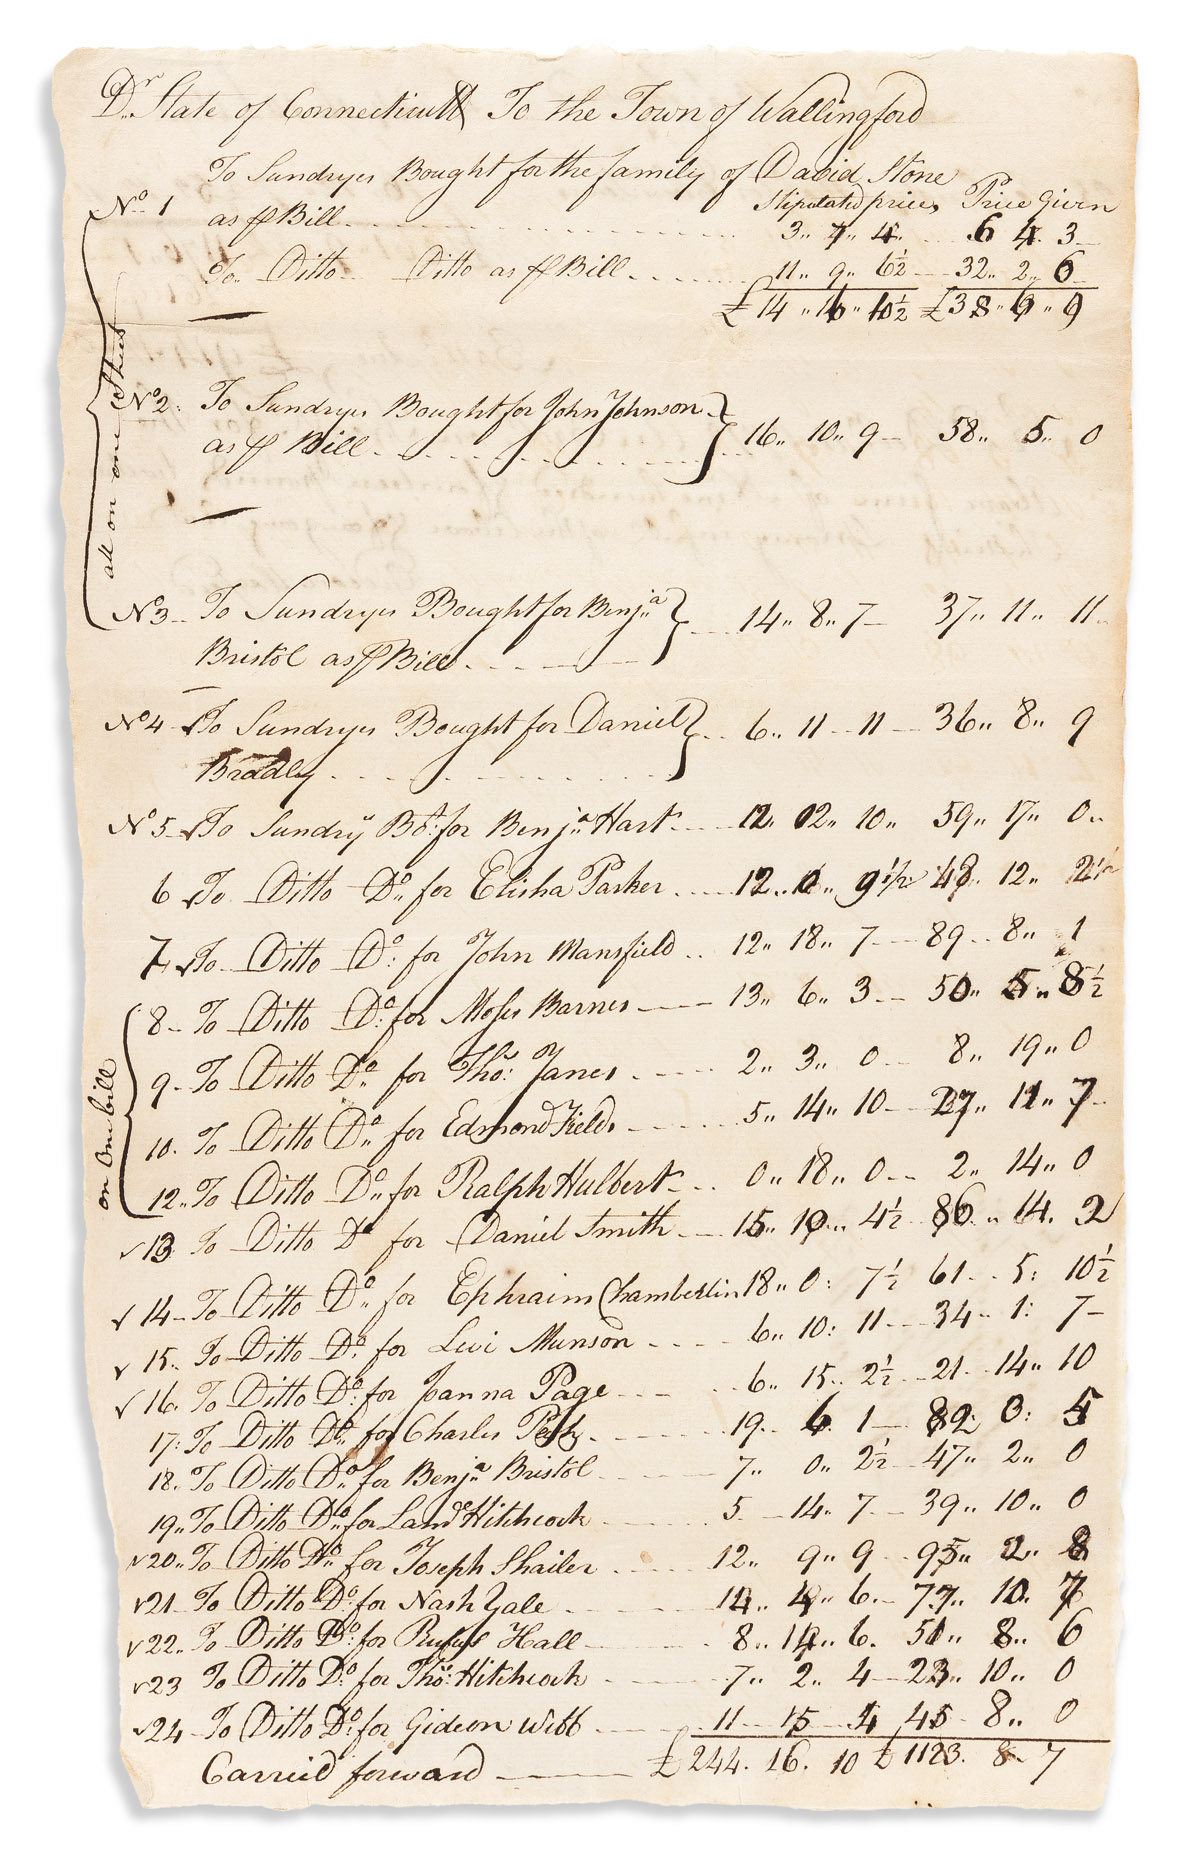 (AMERICAN REVOLUTION--1778.) Invoice for the support of 25 soldiers families in Wallingford, CT.